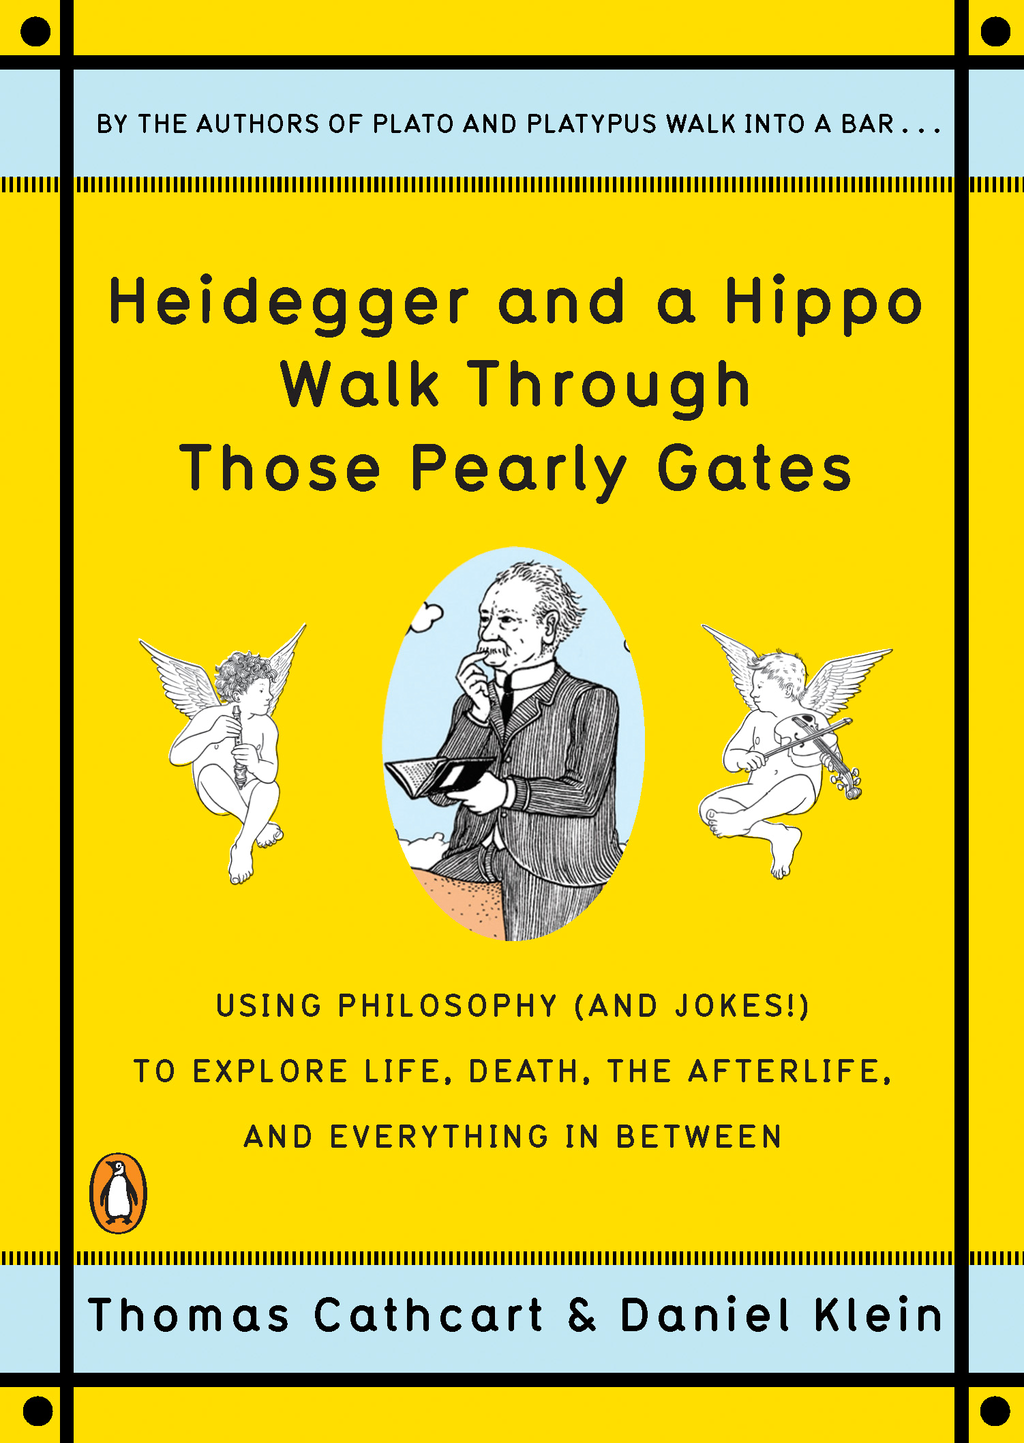 Heidegger and a Hippo Walk Through Those Pearly Gates: Using Philosophy (and Jokes!) to Explore Life, Death, the Afterlife, and Everything in Between By: Daniel Klein,Thomas Cathcart